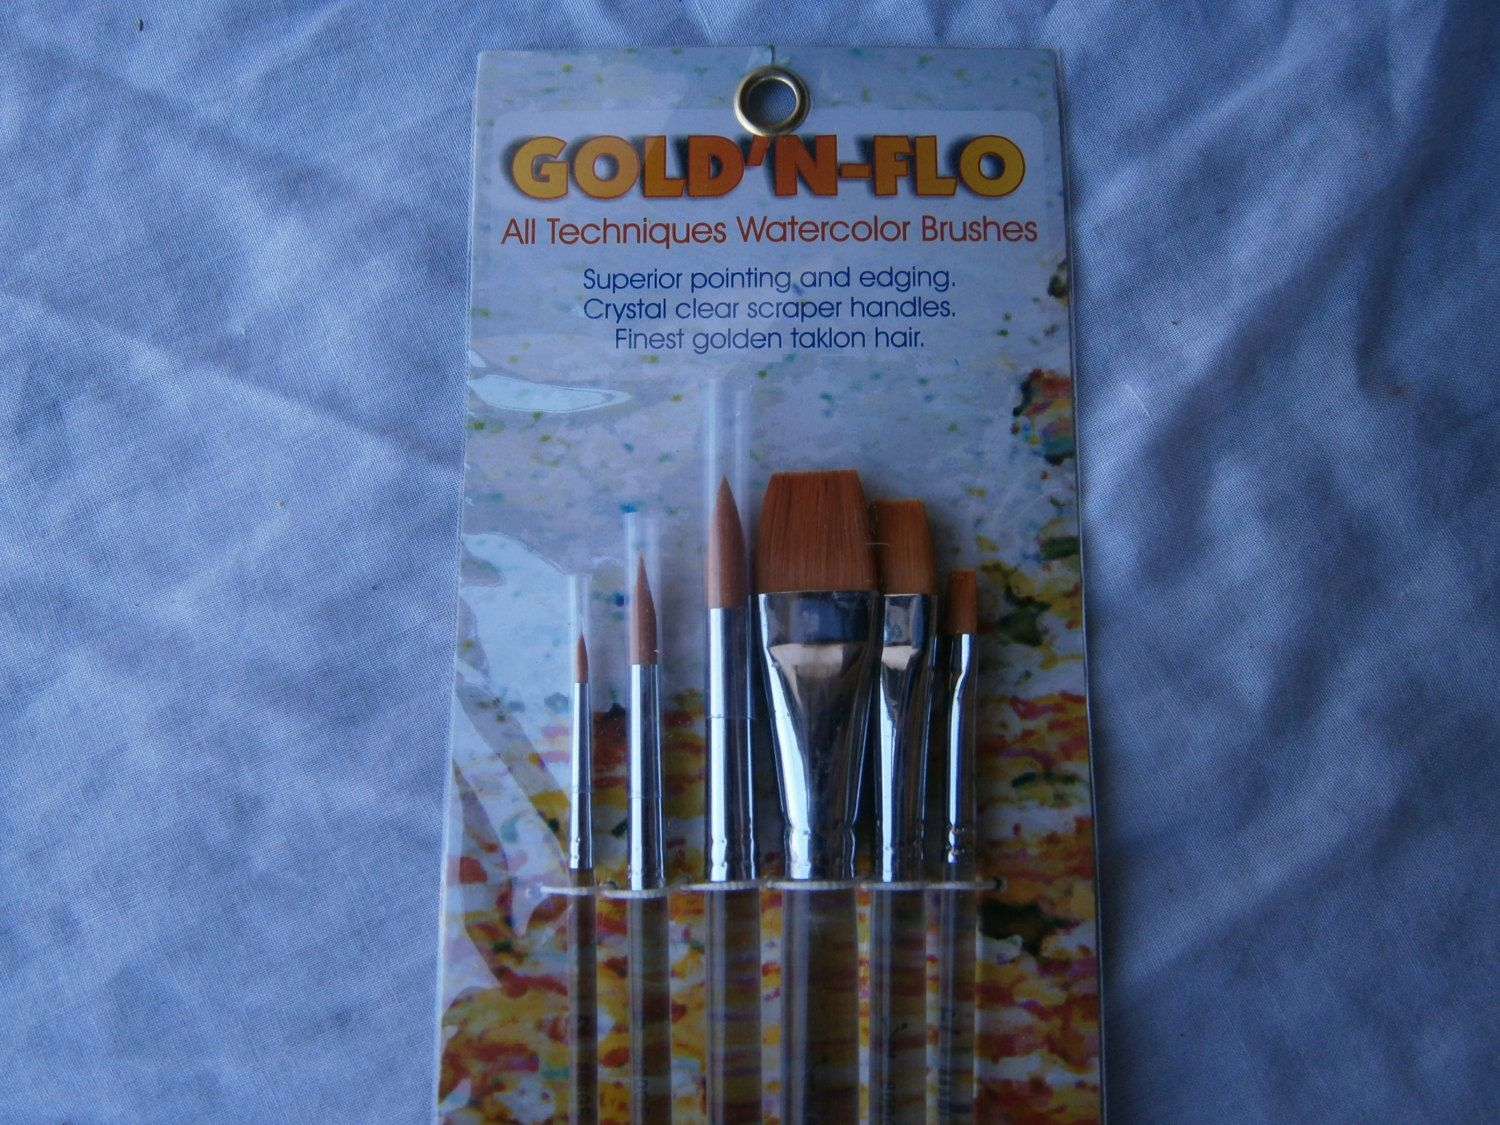 Gold N Flo All Techniques Watercolor Brushes Taklon Hair Scraper